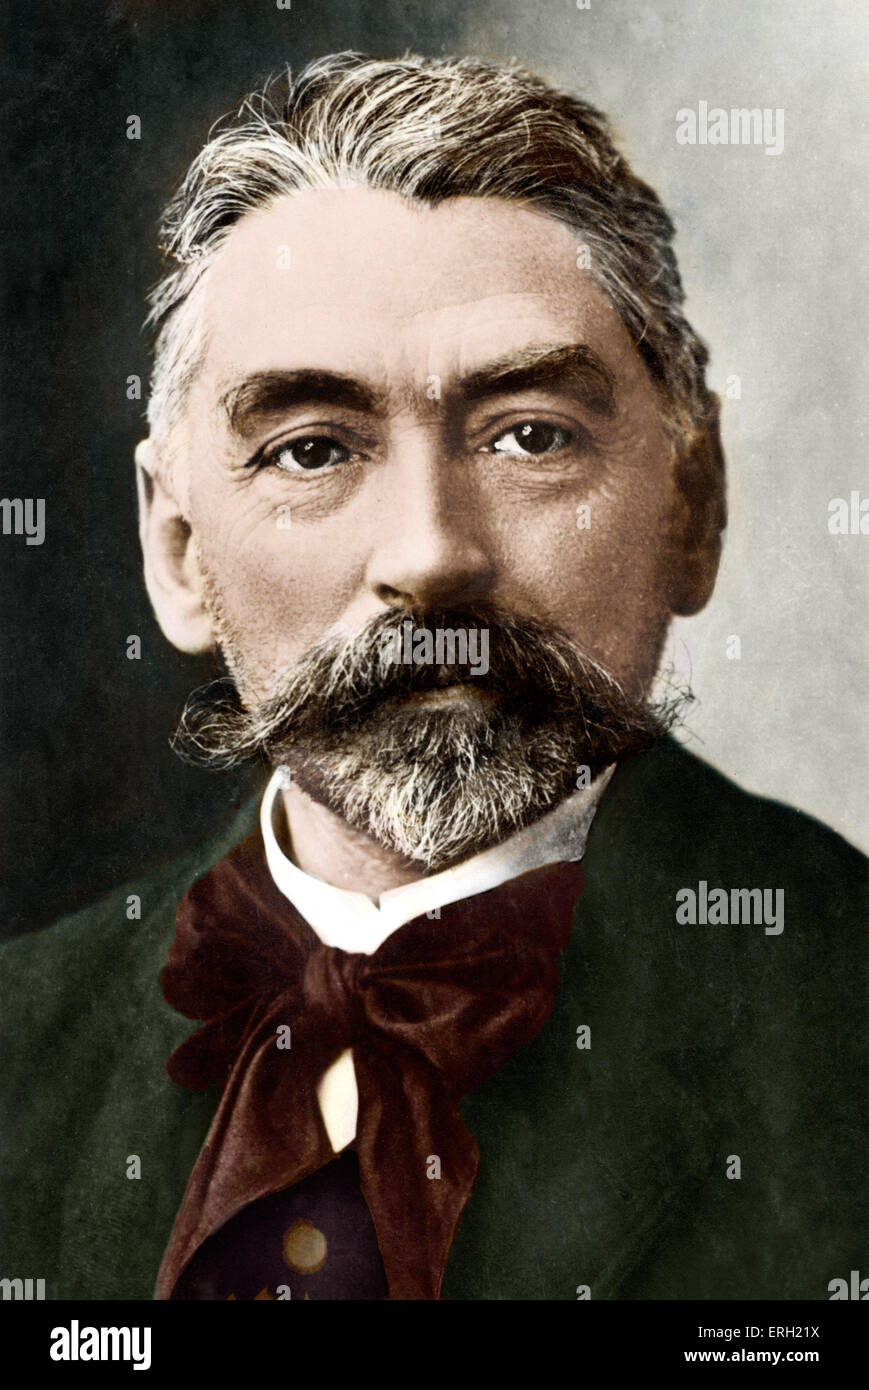 Stéphane Mallarmé French poet,  1842-1898. A leading Symbolist. Colourised version. - Stock Image